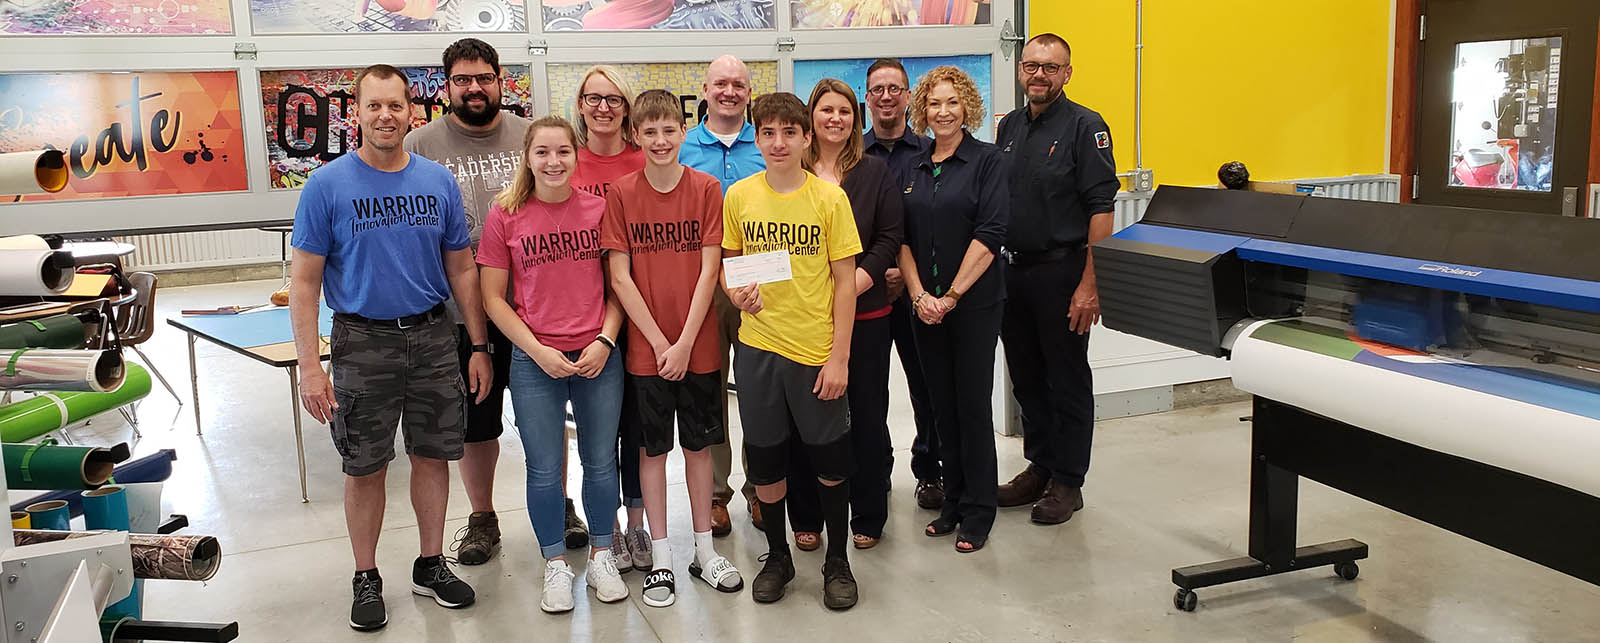 Printing company Quad works with students at Waupun Innovation Center